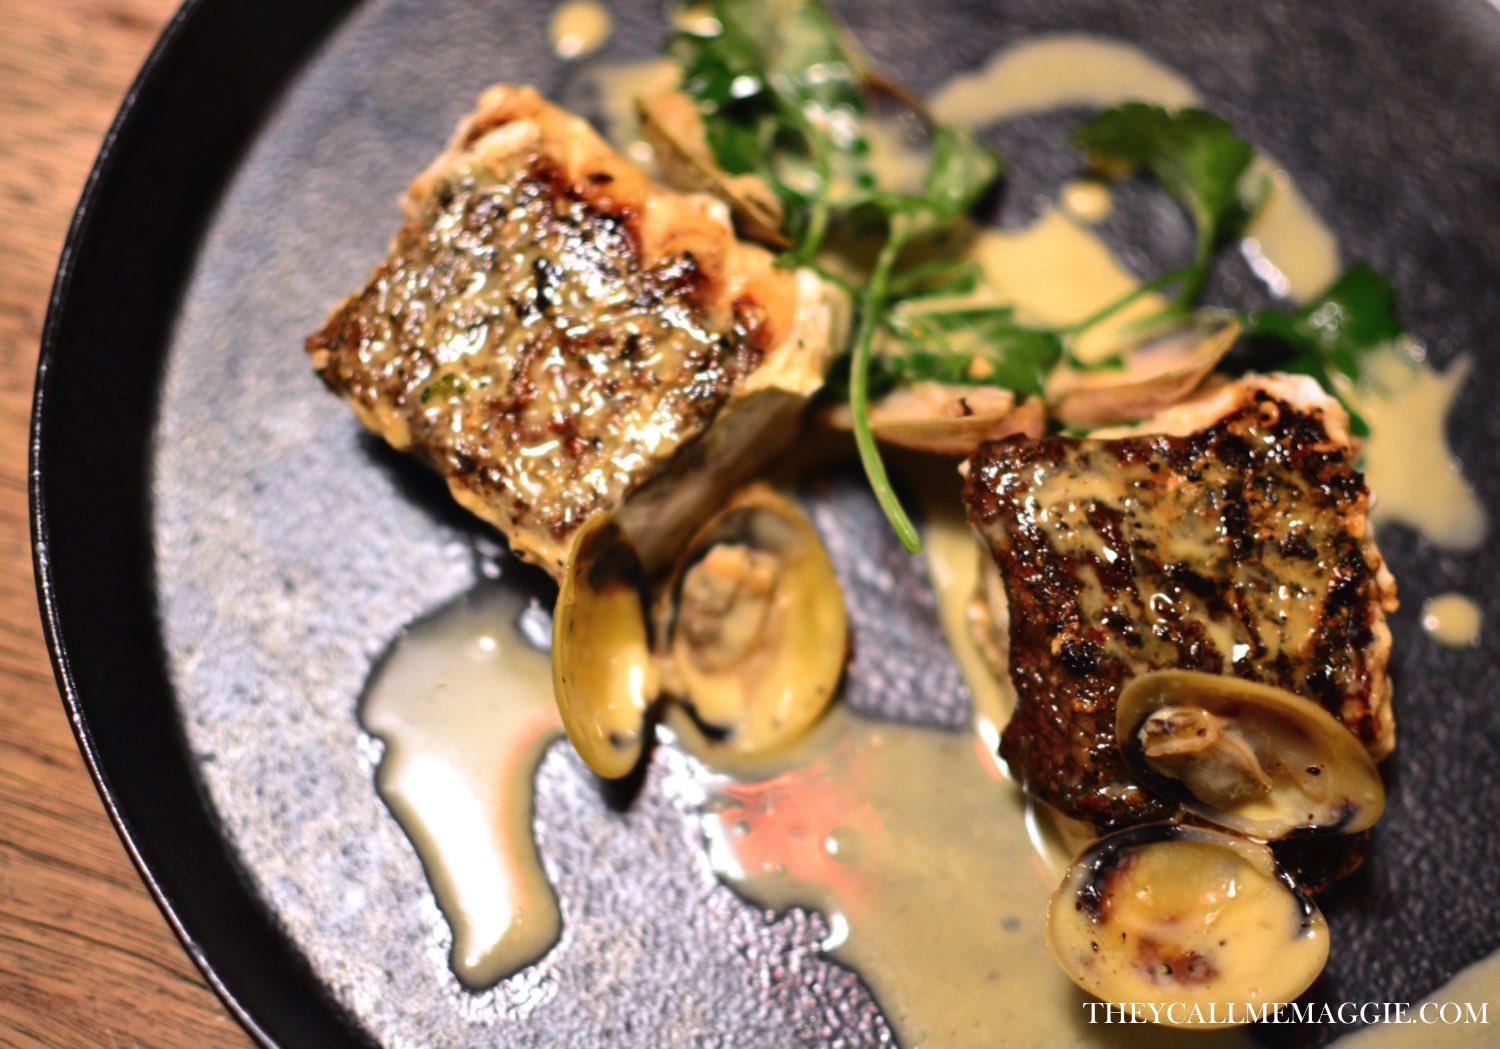 Seared Blue Eye with clams, white wine and parsley